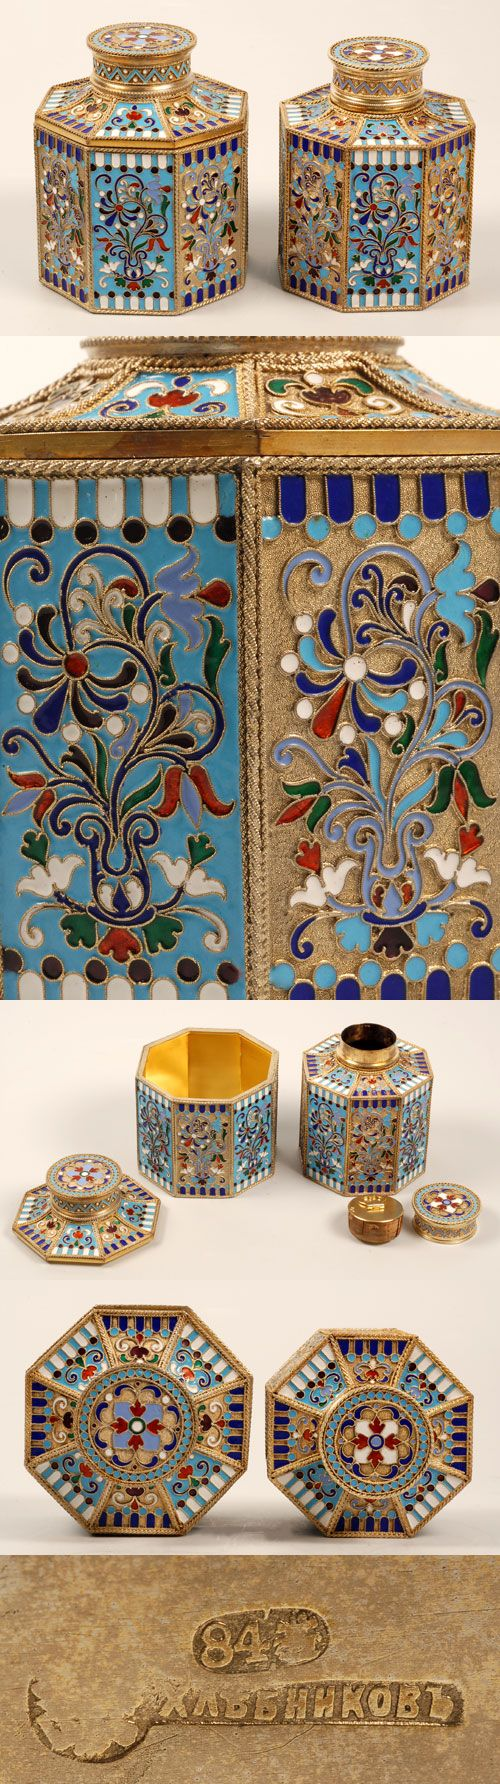 A Russian silver gilt and cloisonne enamel tea caddy and sugar box, Ivan Khlebnikov, Moscow, late 19th century. The octagonal containers decorated in panels of multi-color scrolling foliate and floral designs alternating between a turquoise enamel ground and a stippled gilded ground between enameled geometric borders.